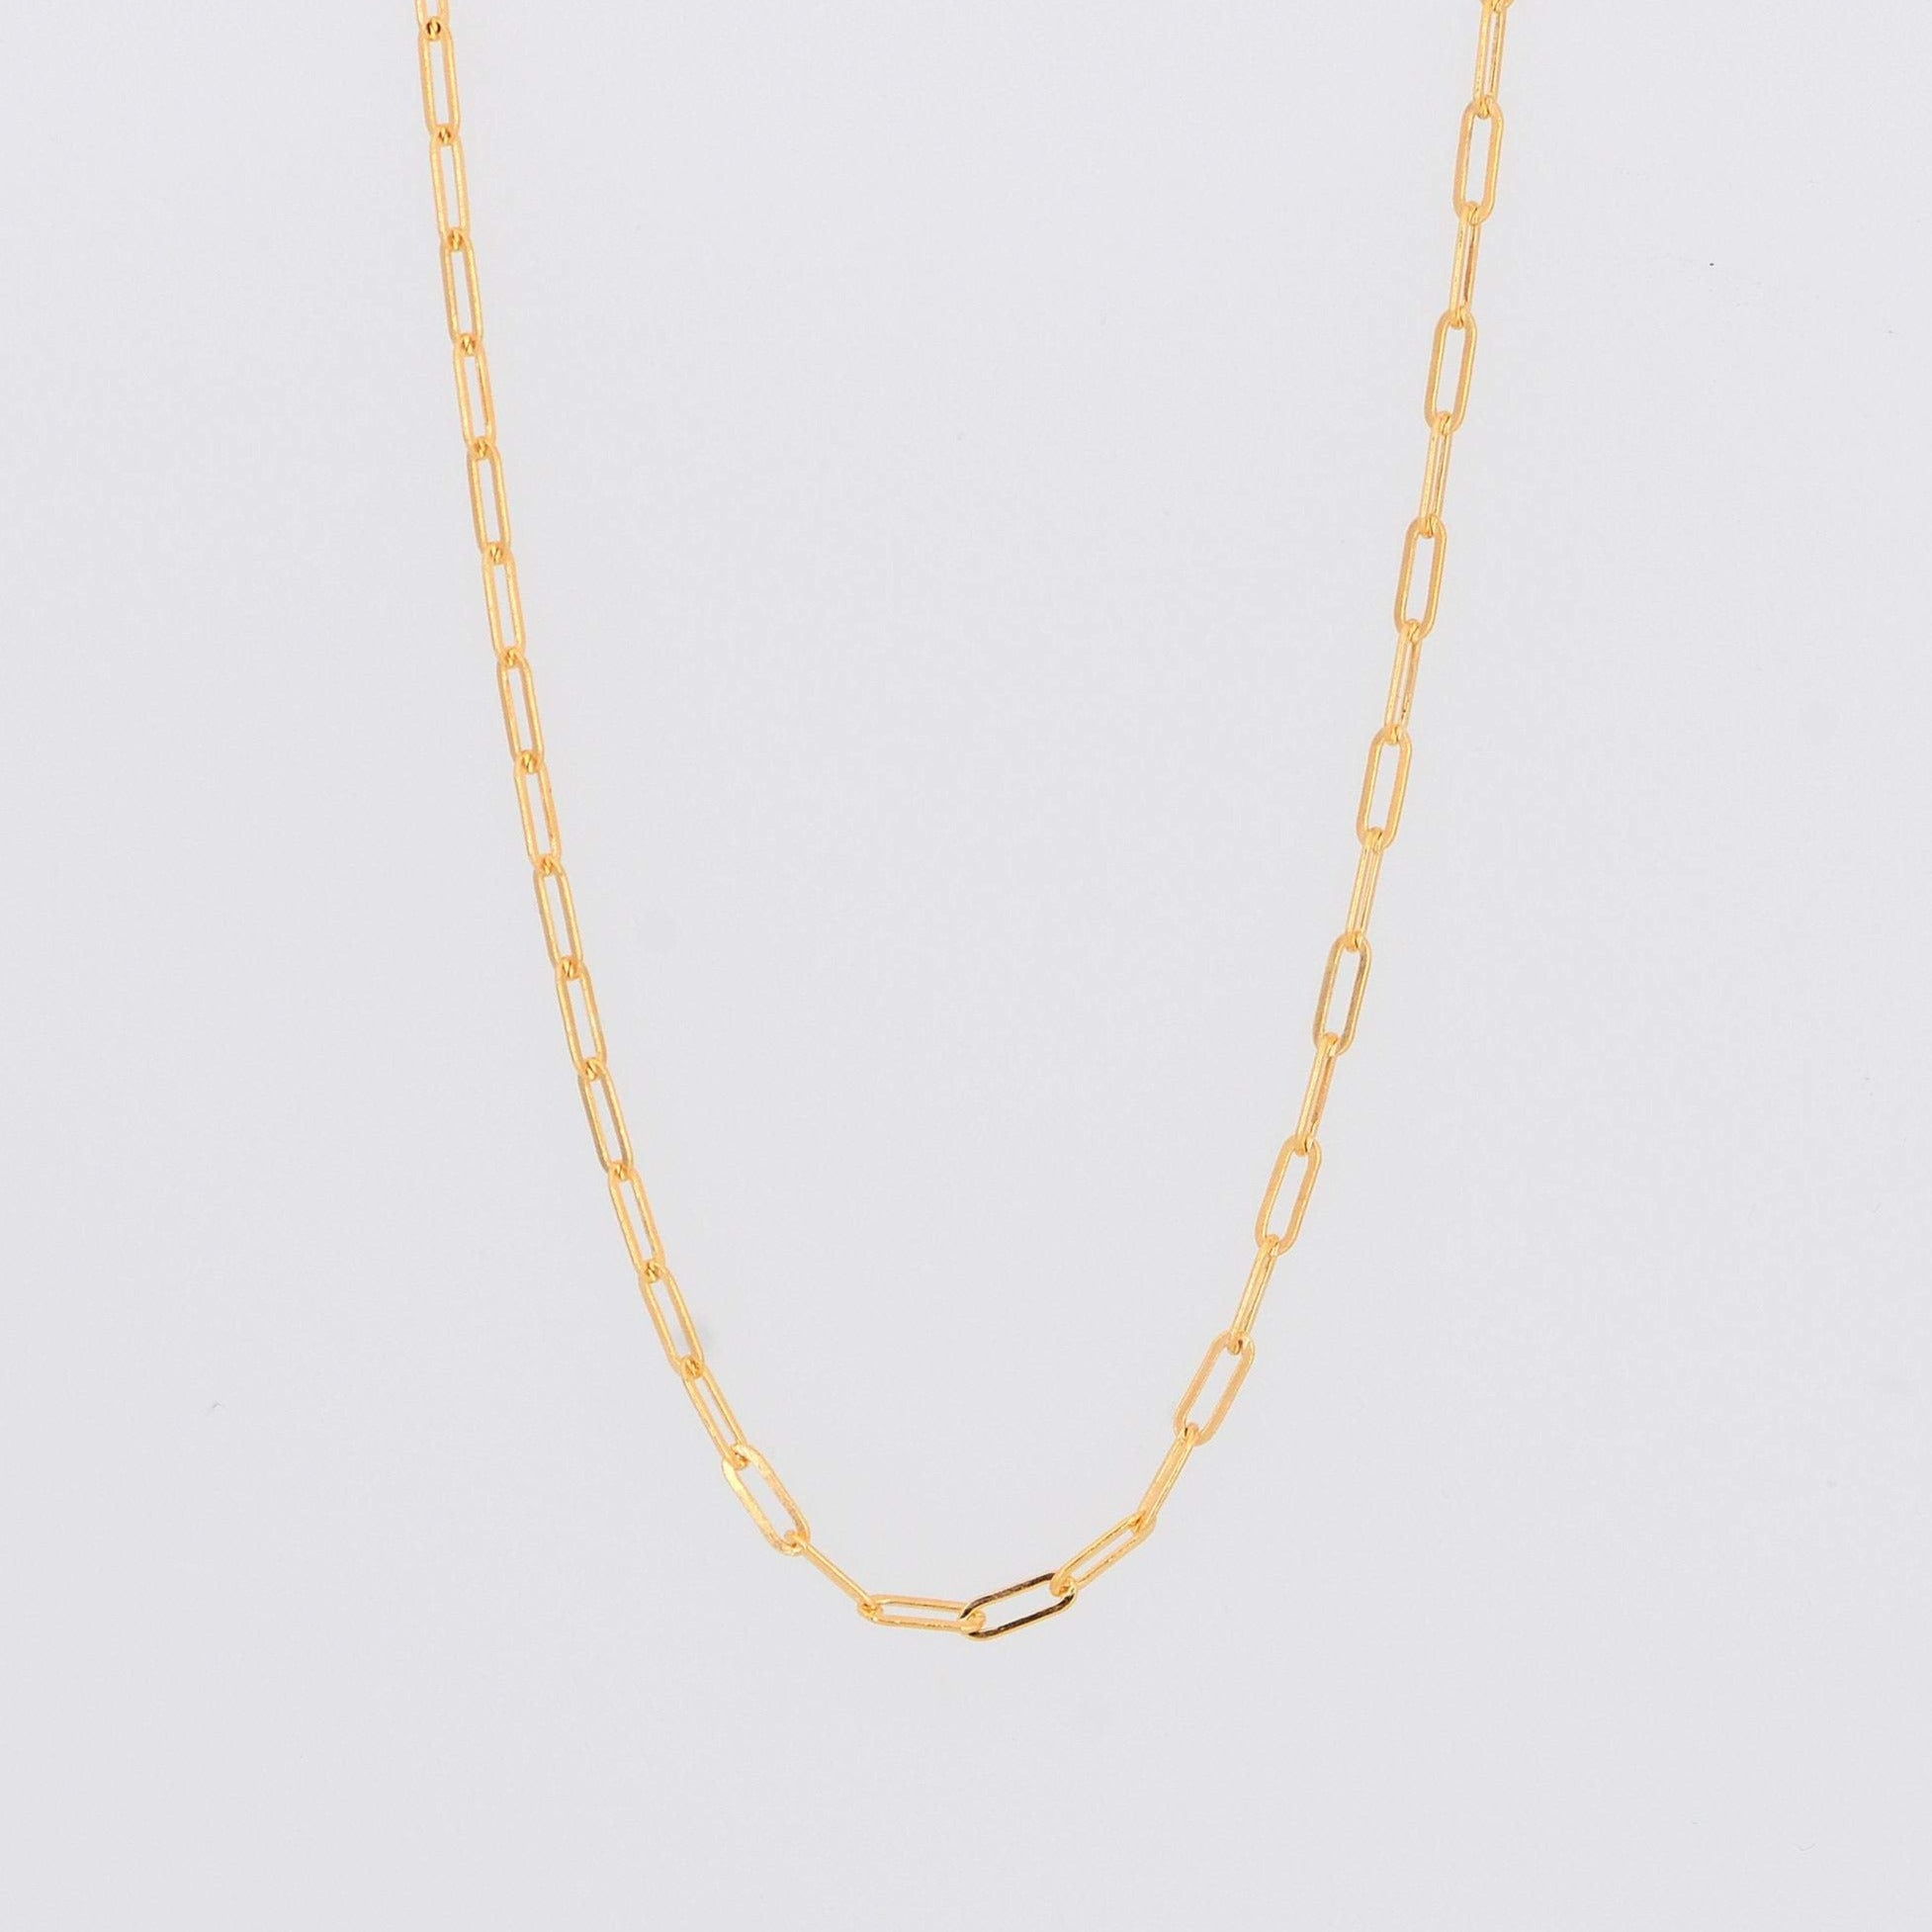 Paperclip Chain Necklace,Rectangle Link Chain